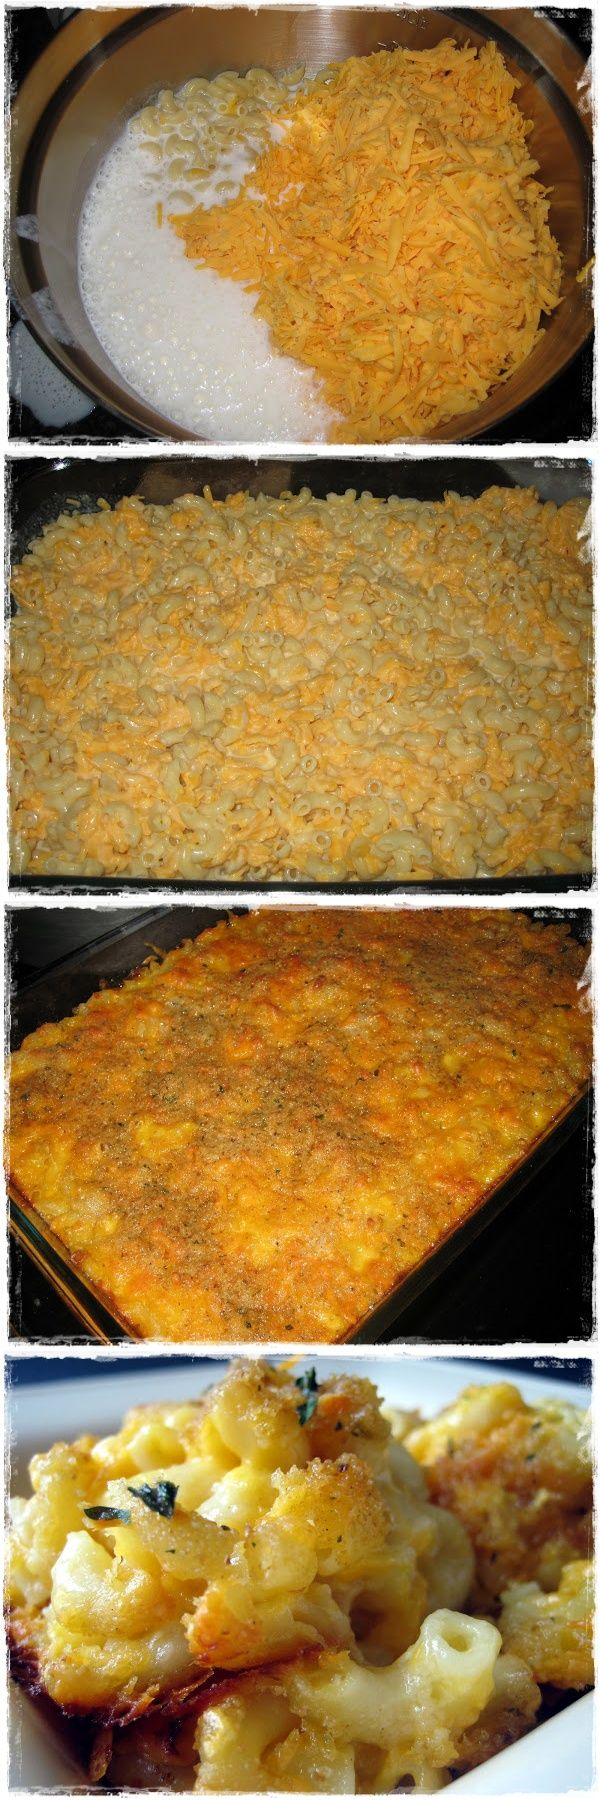 This was so EASY!! I used 1 cup of milk and 1 cup of heavy cream...just because :-) The entire 9 x 13 pan was gone in one sitting. Next time I may add tuna & peas for a casserole. (Baked Macaroni-n-Cheese, no Roux)